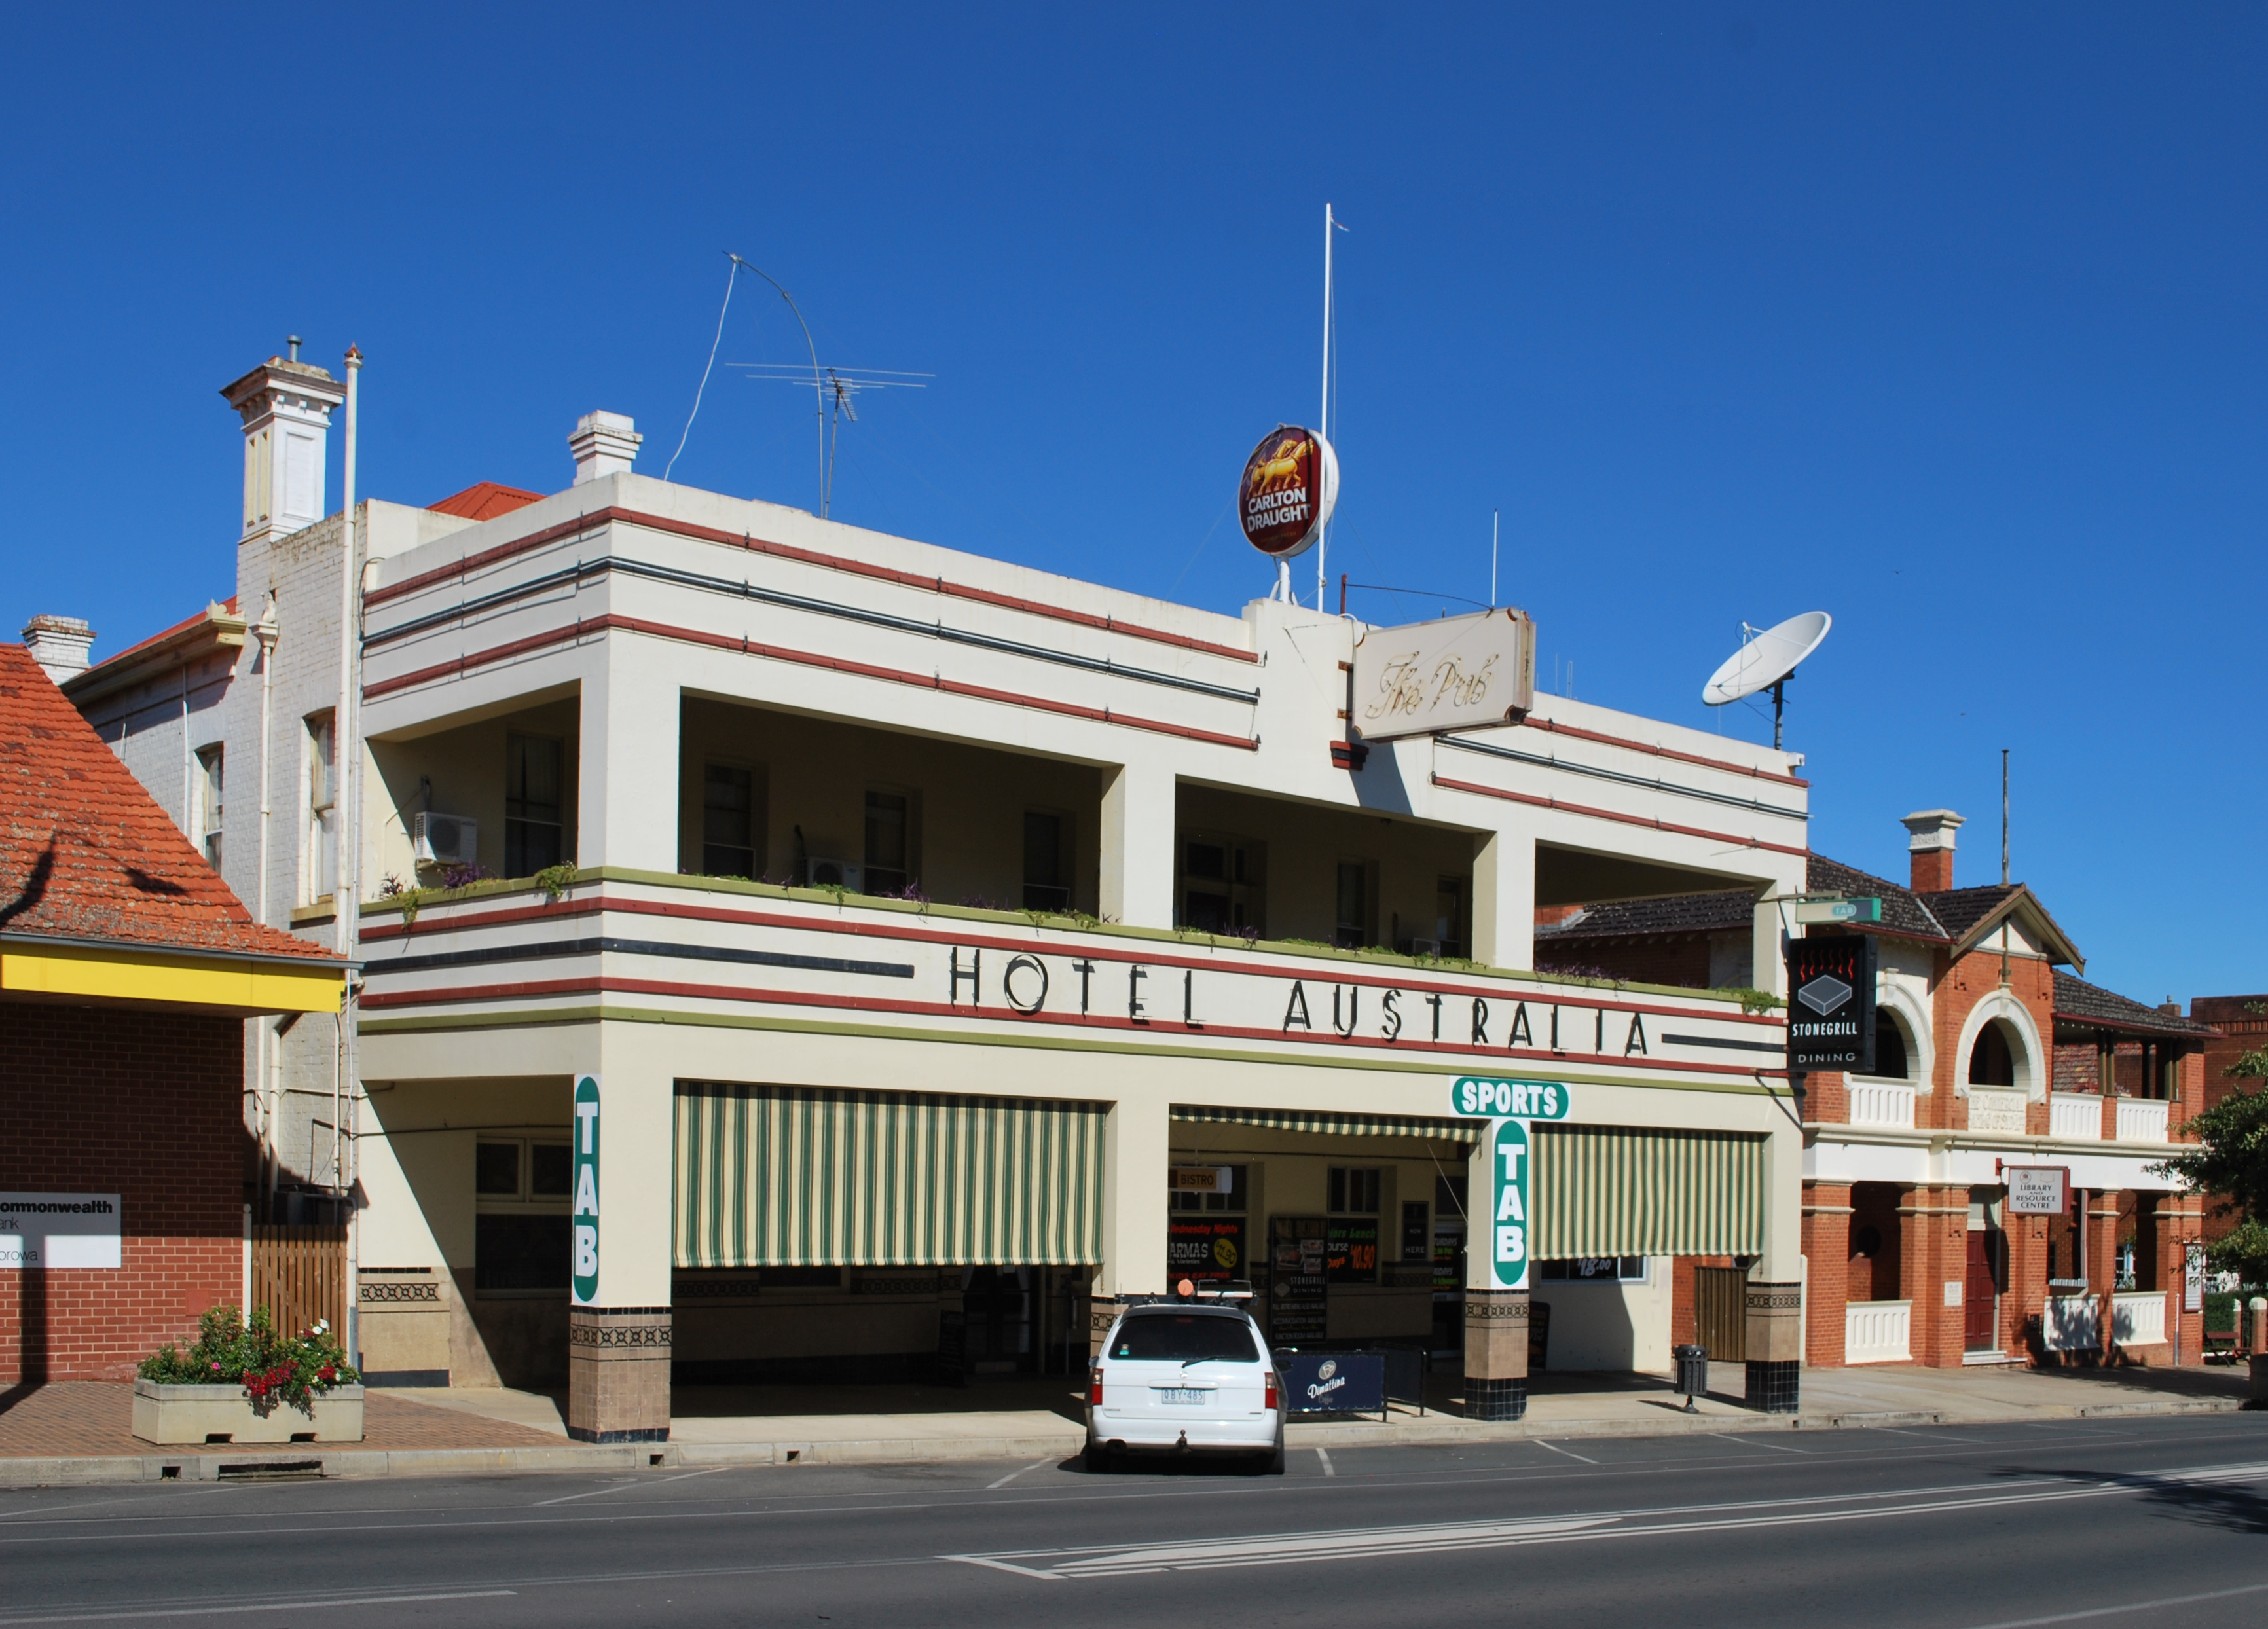 Corowa Australia  City new picture : Corowa Hotel Australia 002 Wikimedia Commons